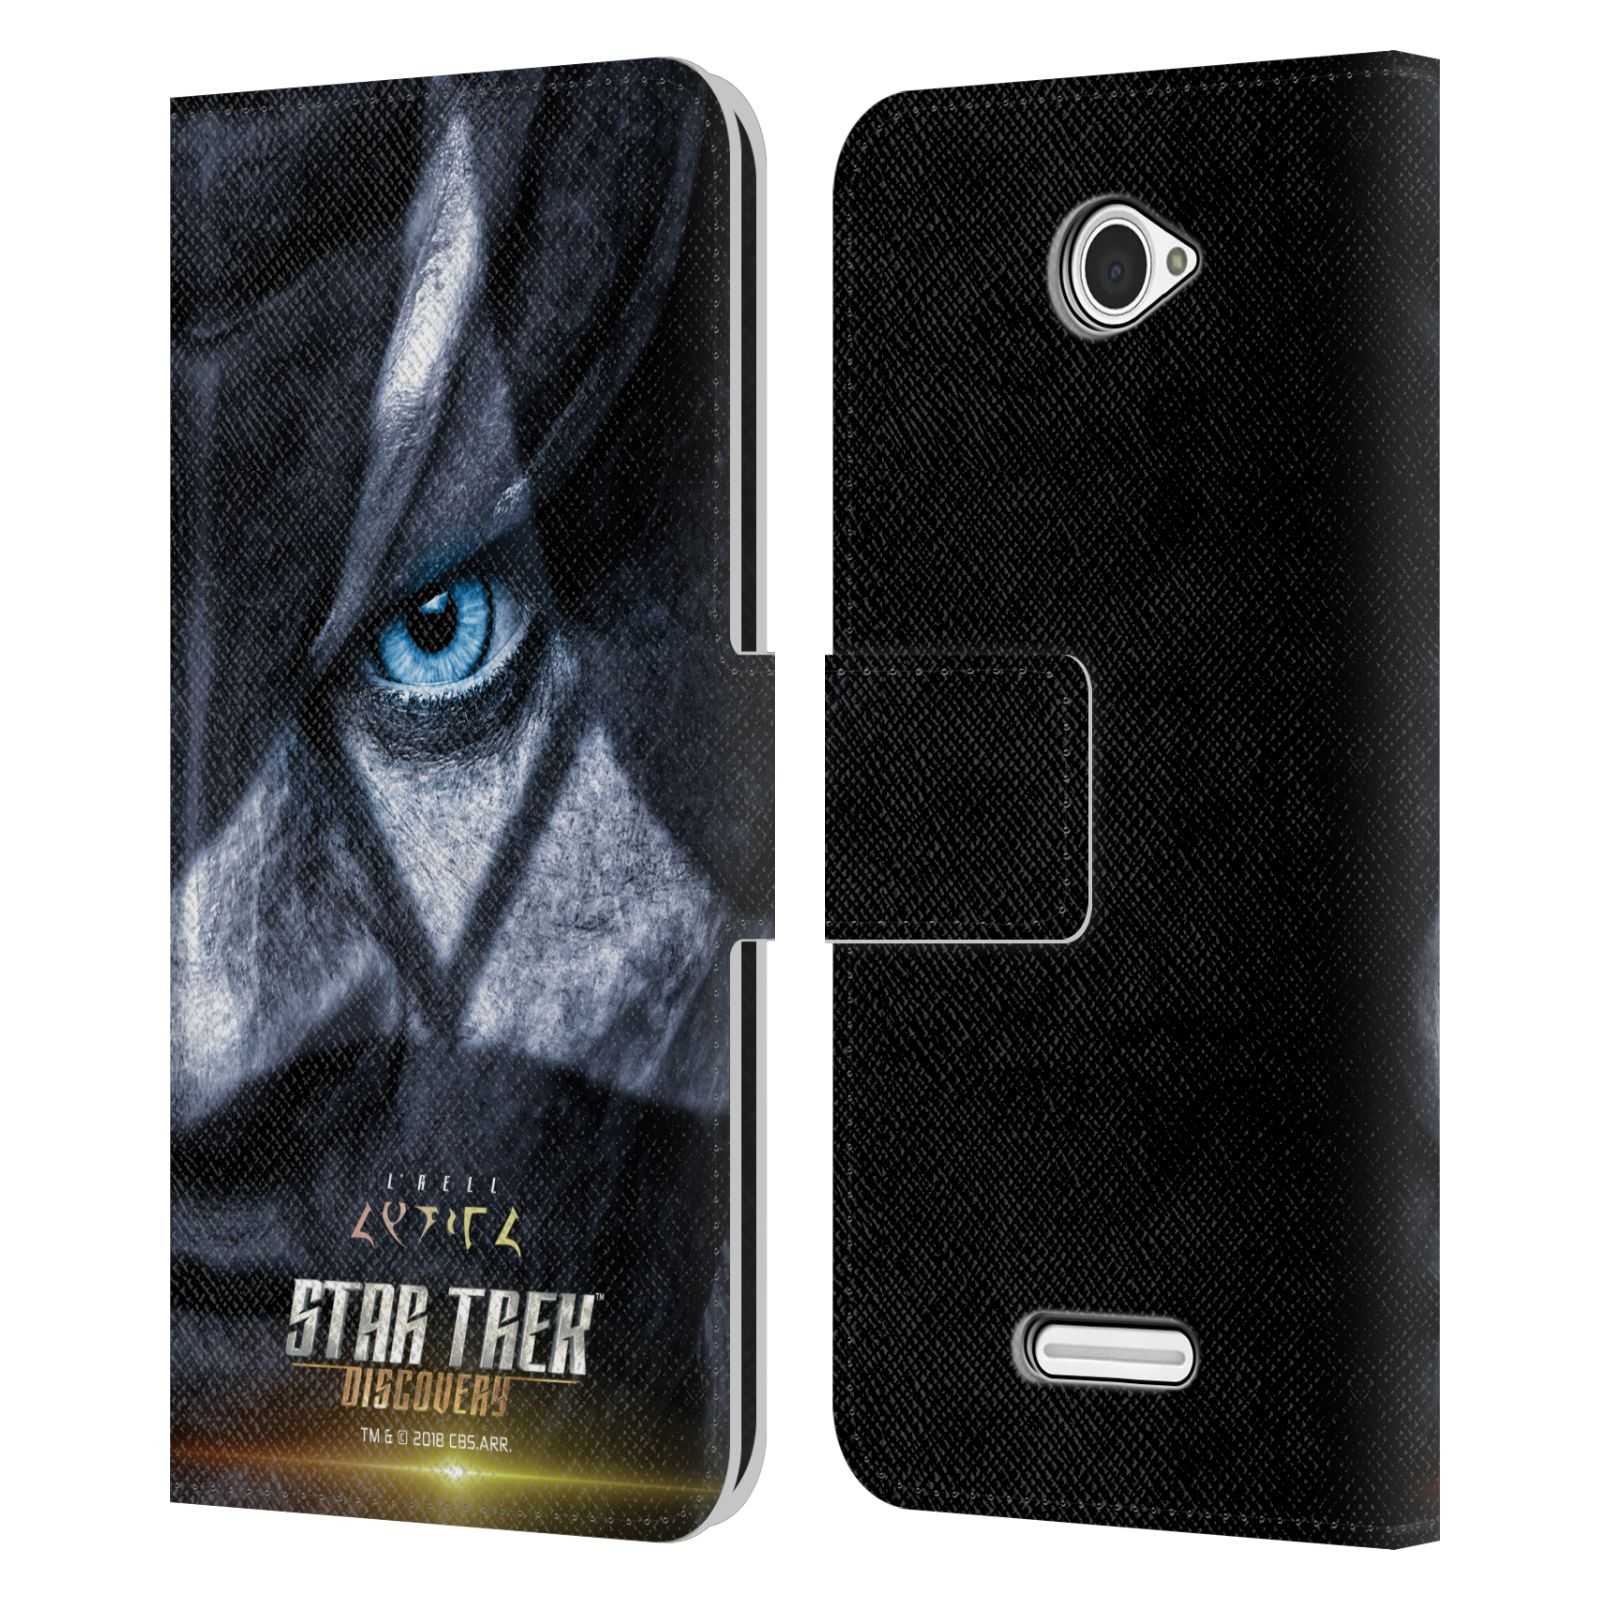 STAR-TREK-DISCOVERY-CHARACTER-POSTERS-LEATHER-BOOK-WALLET-CASE-FOR-SONY-PHONES-2